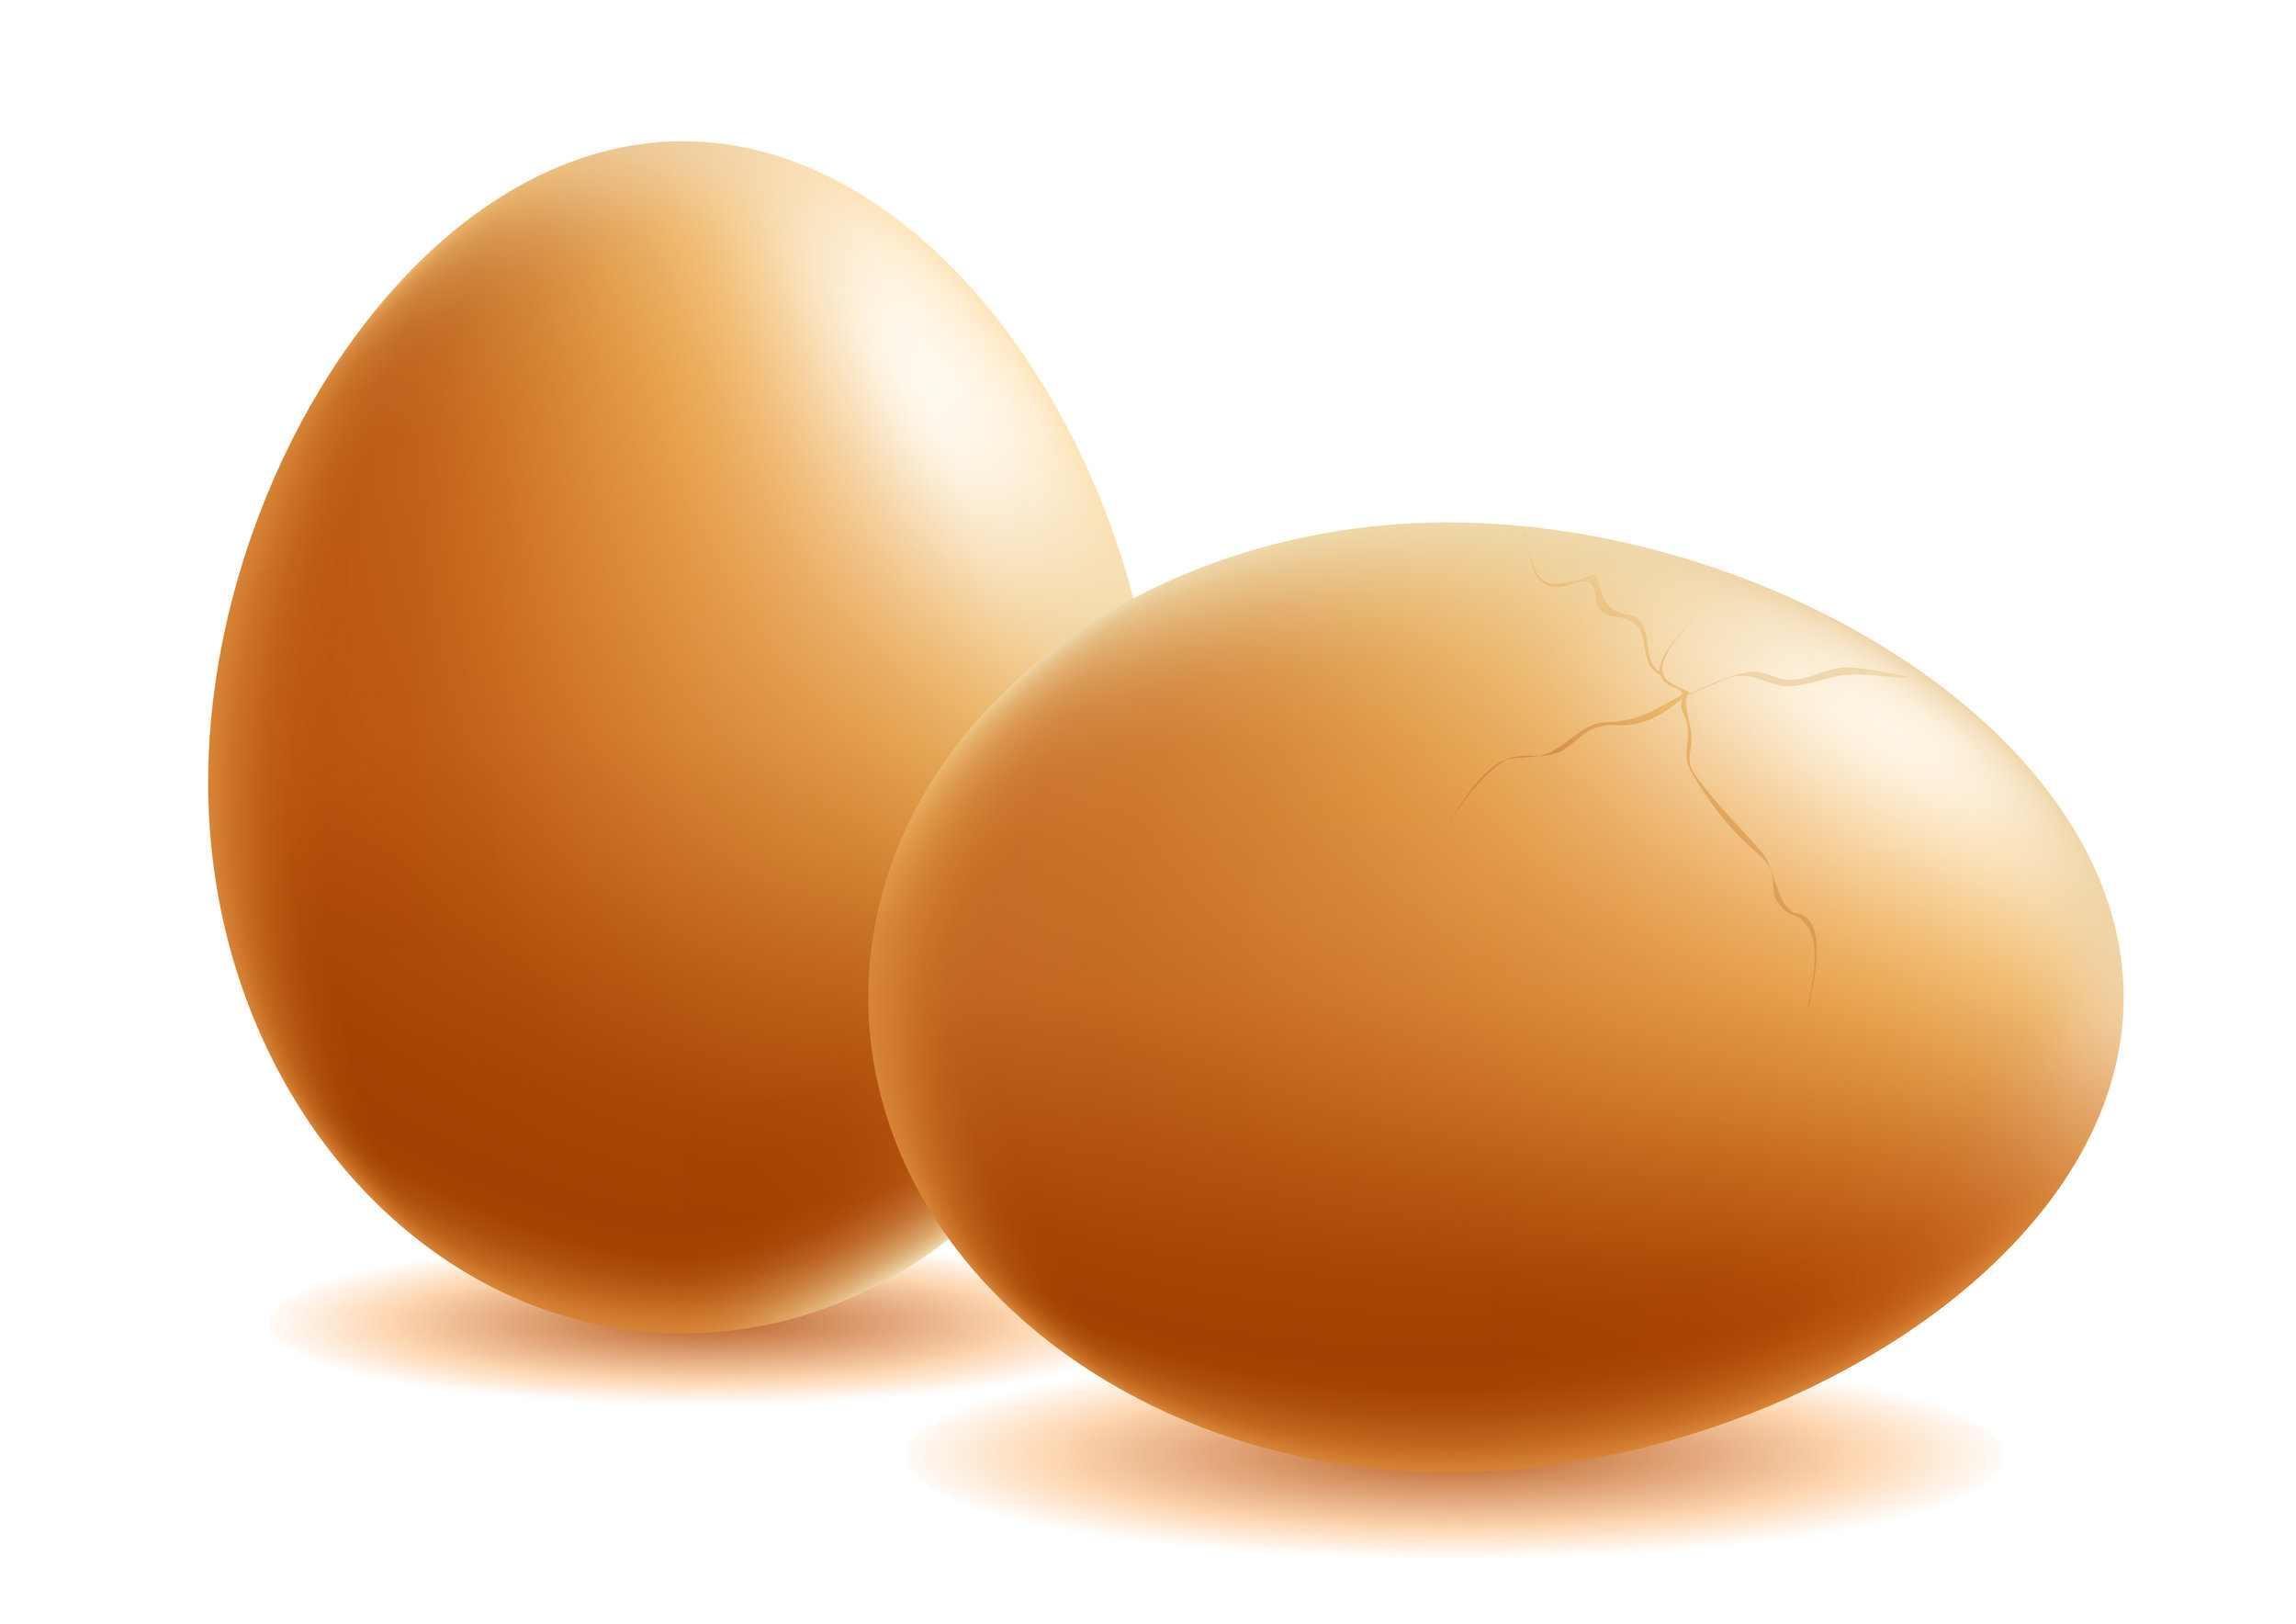 Click Here to Learn More About Eggs